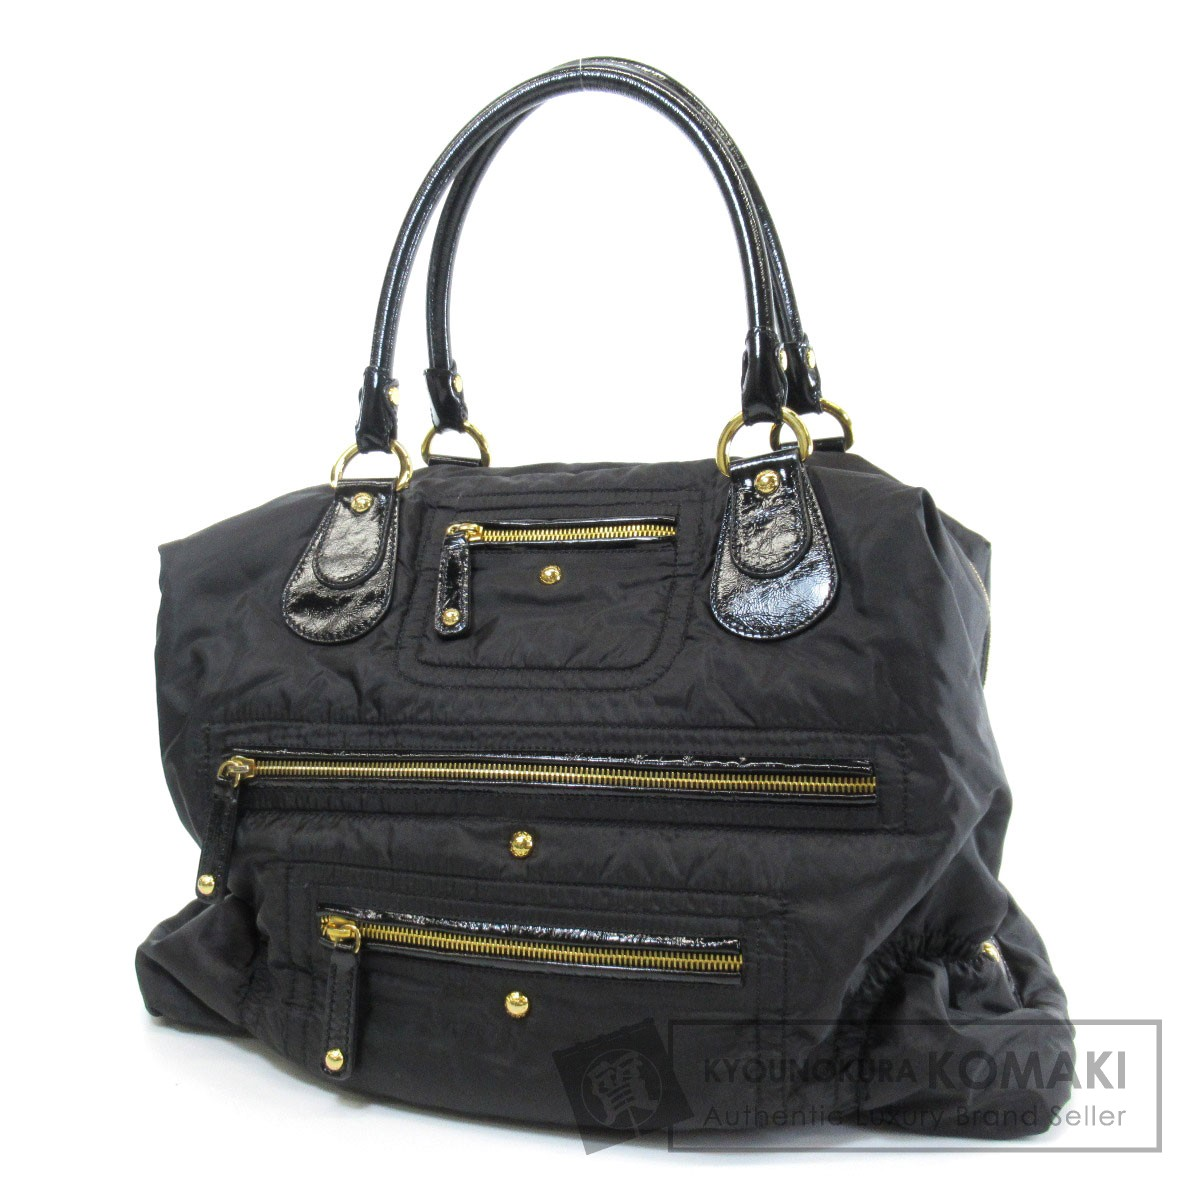 TODS フロントポケット ボストンバッグ ナイロン素材/パテントレザー レディース 【中古】【トッズ】